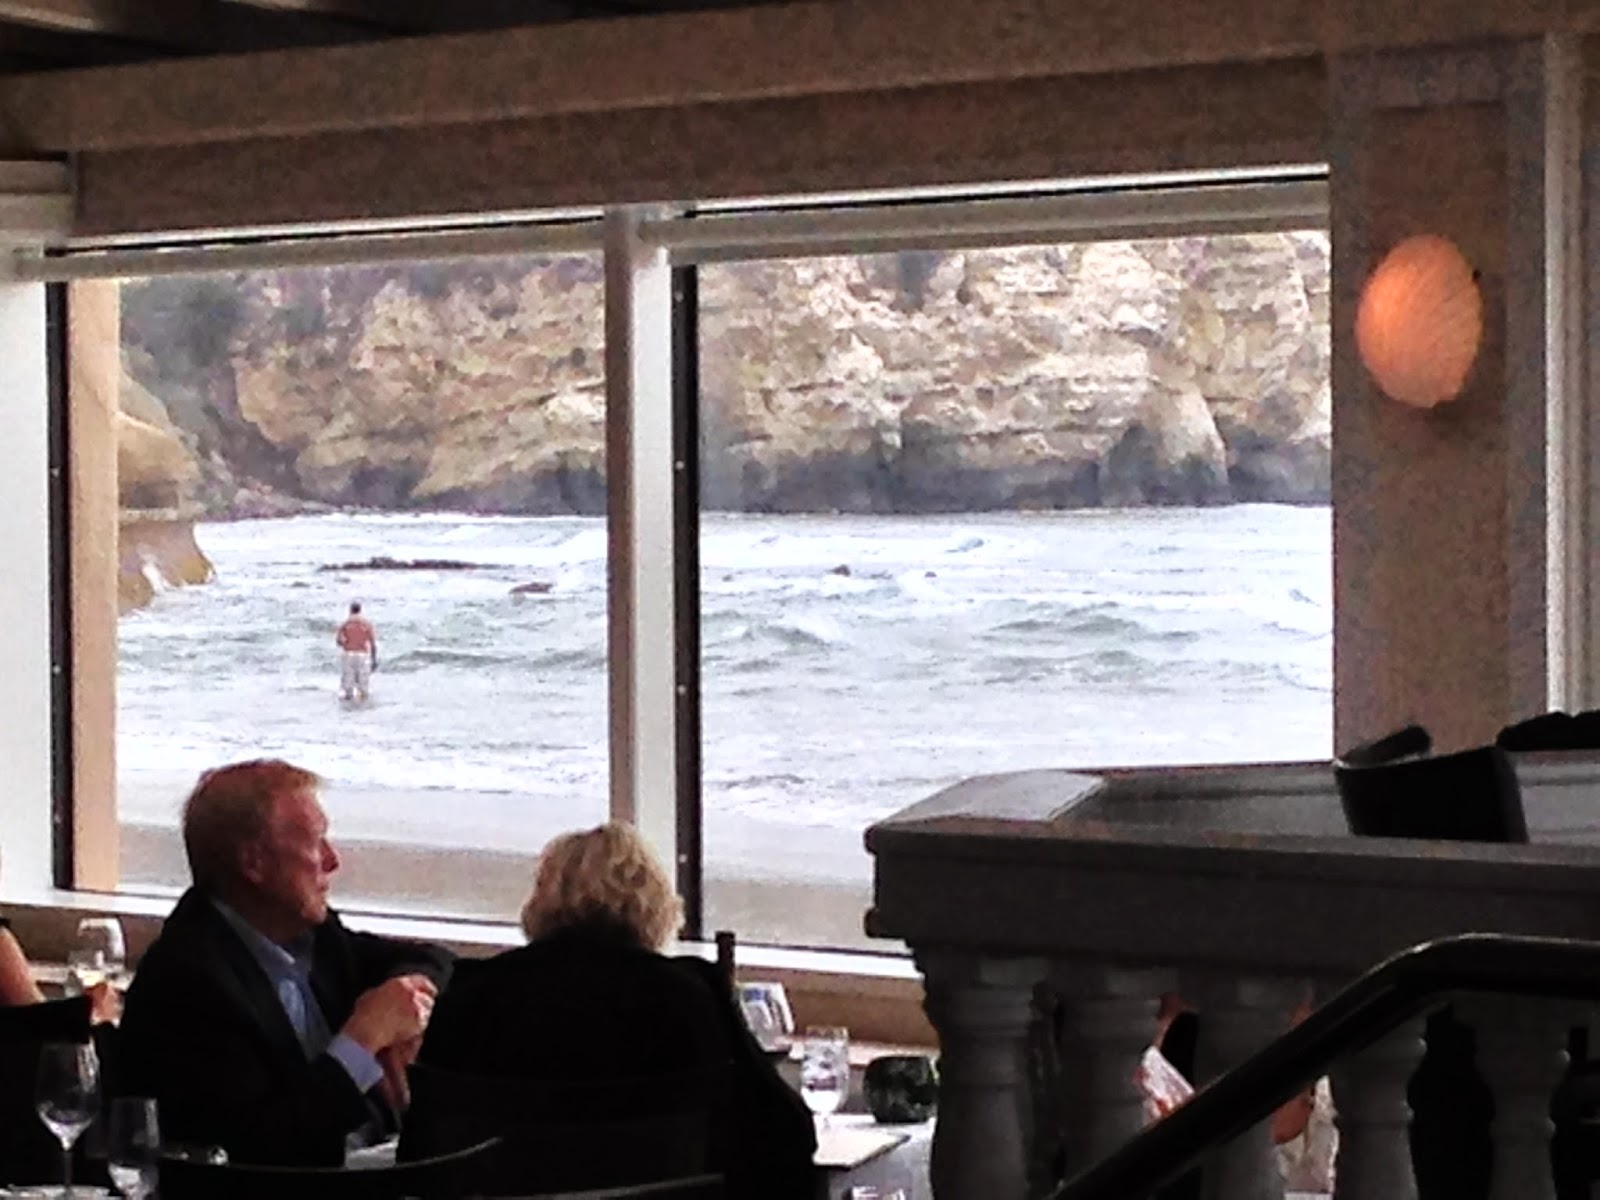 Life Is A Highway The Marine Room Elegant Dining On The Surf